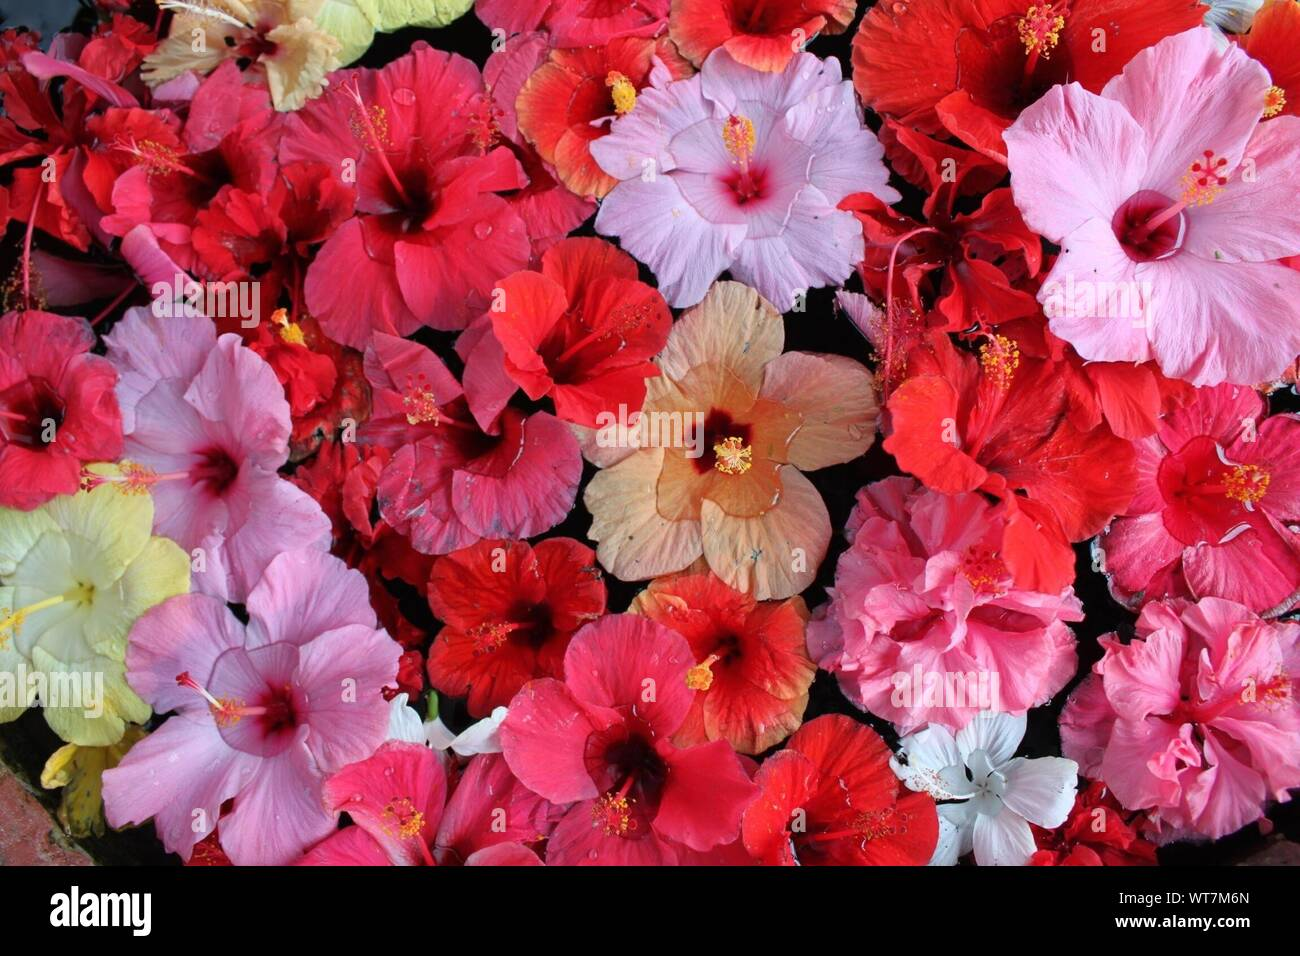 Close Up Image Of Beautiful Plants Stock Photo